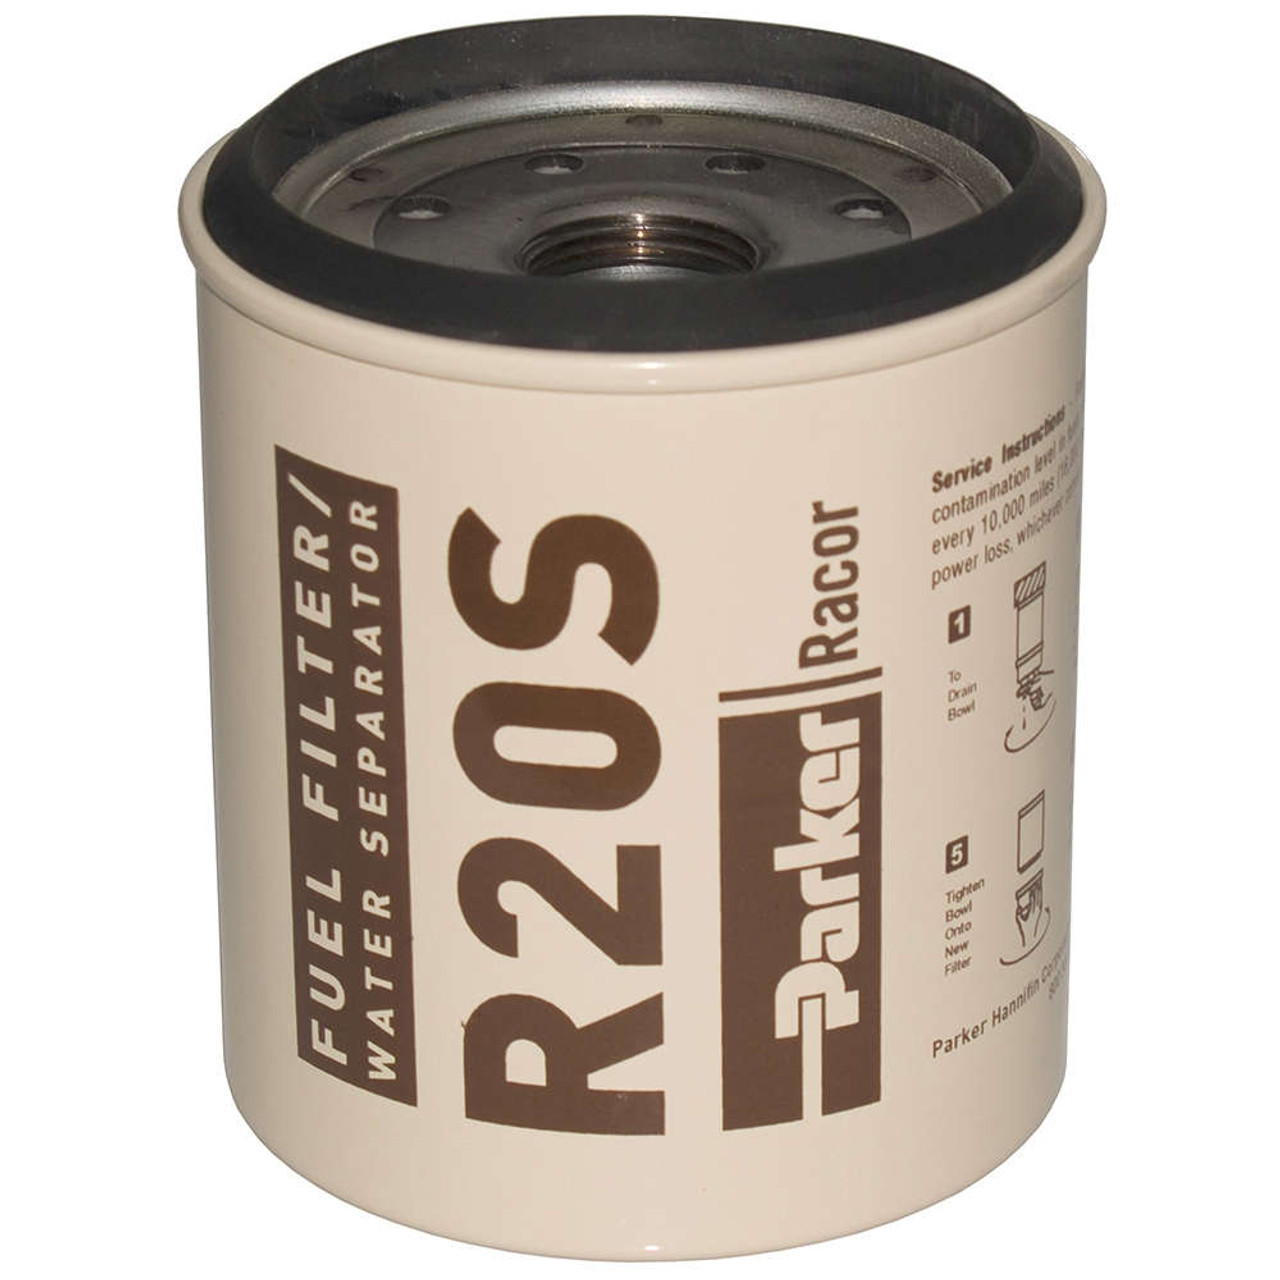 heavy duty fuel filter for see thru schematic diagram Donaldson Engine Air Filter heavy duty fuel filter for see thru wiring library see thru clutch cover racor 200 series